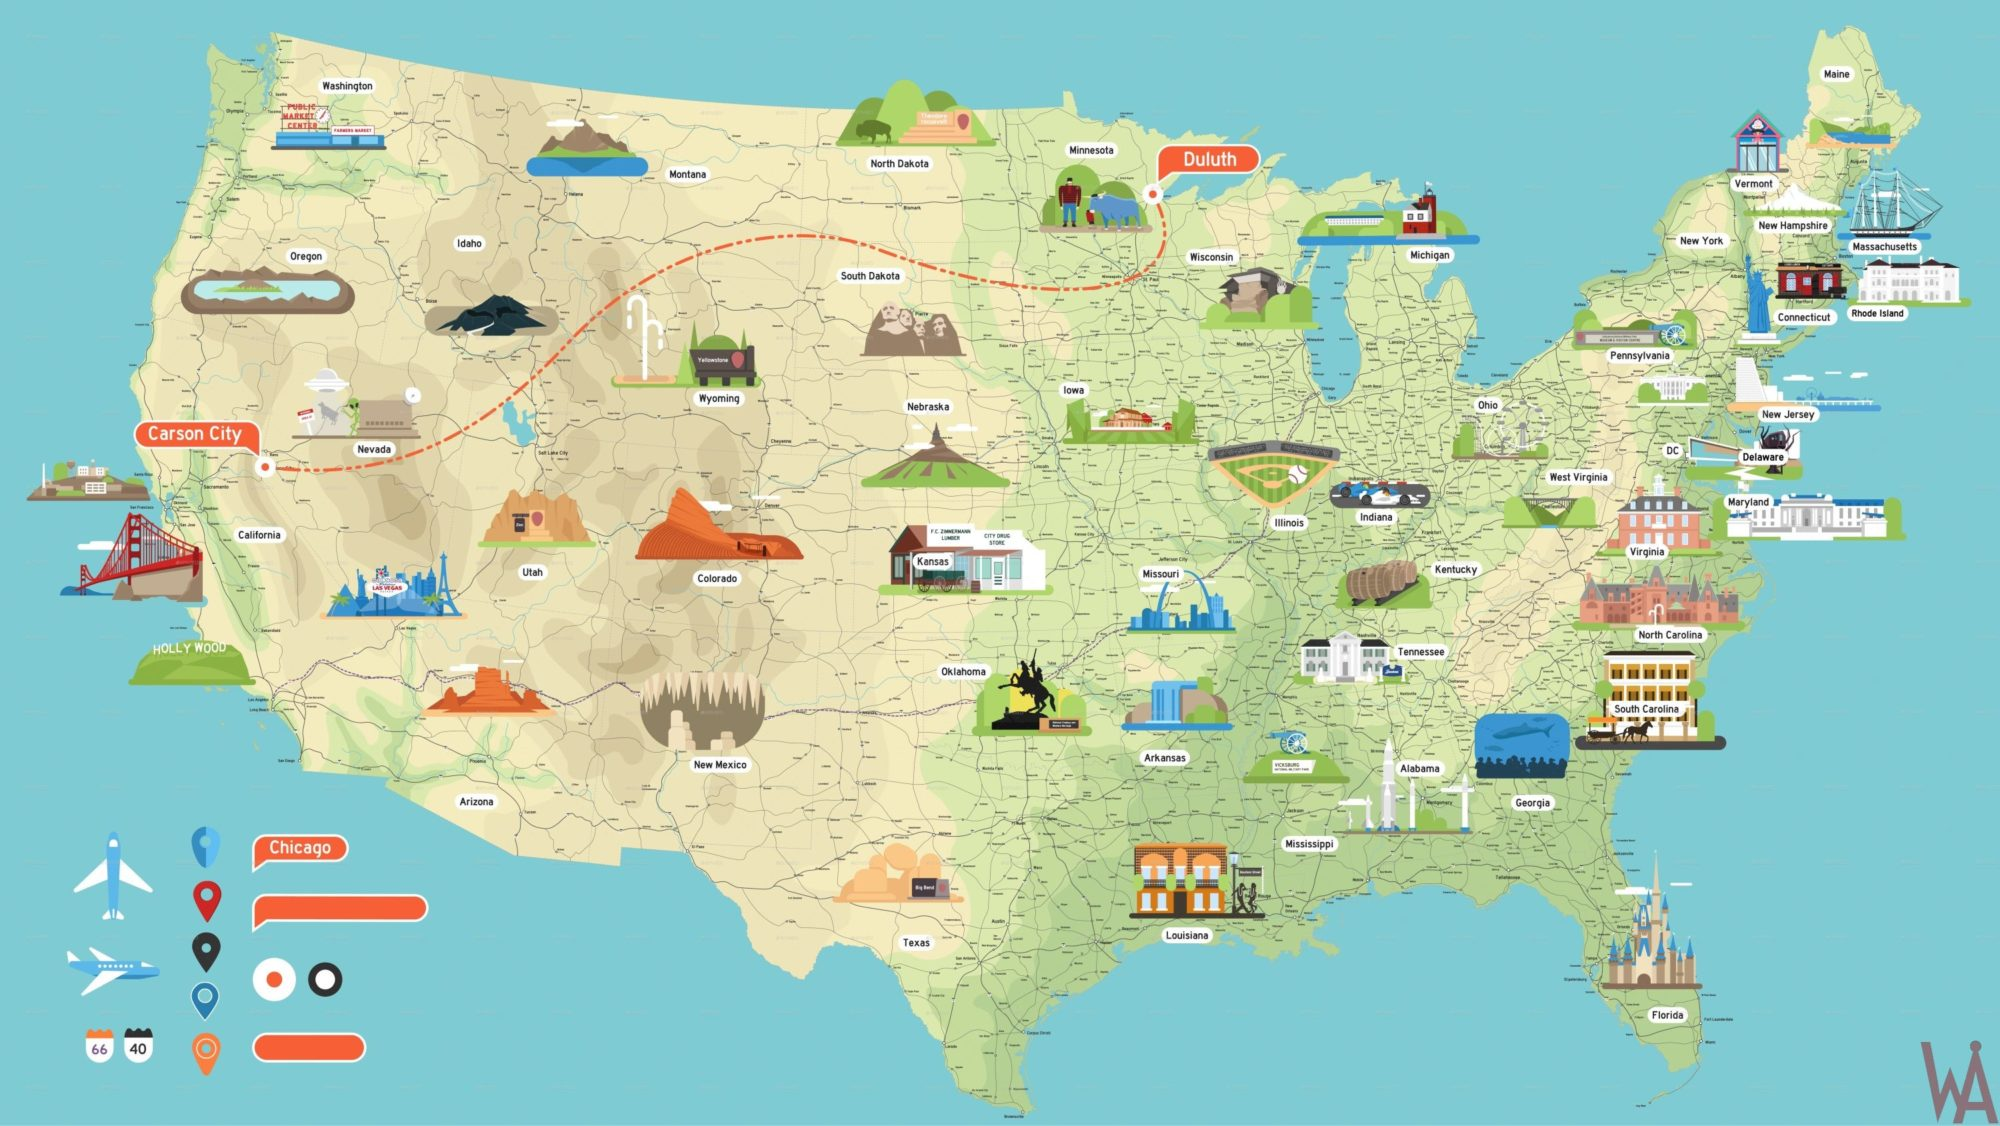 Map Of Arizona With Tourist Attractions.High Quality Tourist Attraction Map Of The Usa Whatsanswer